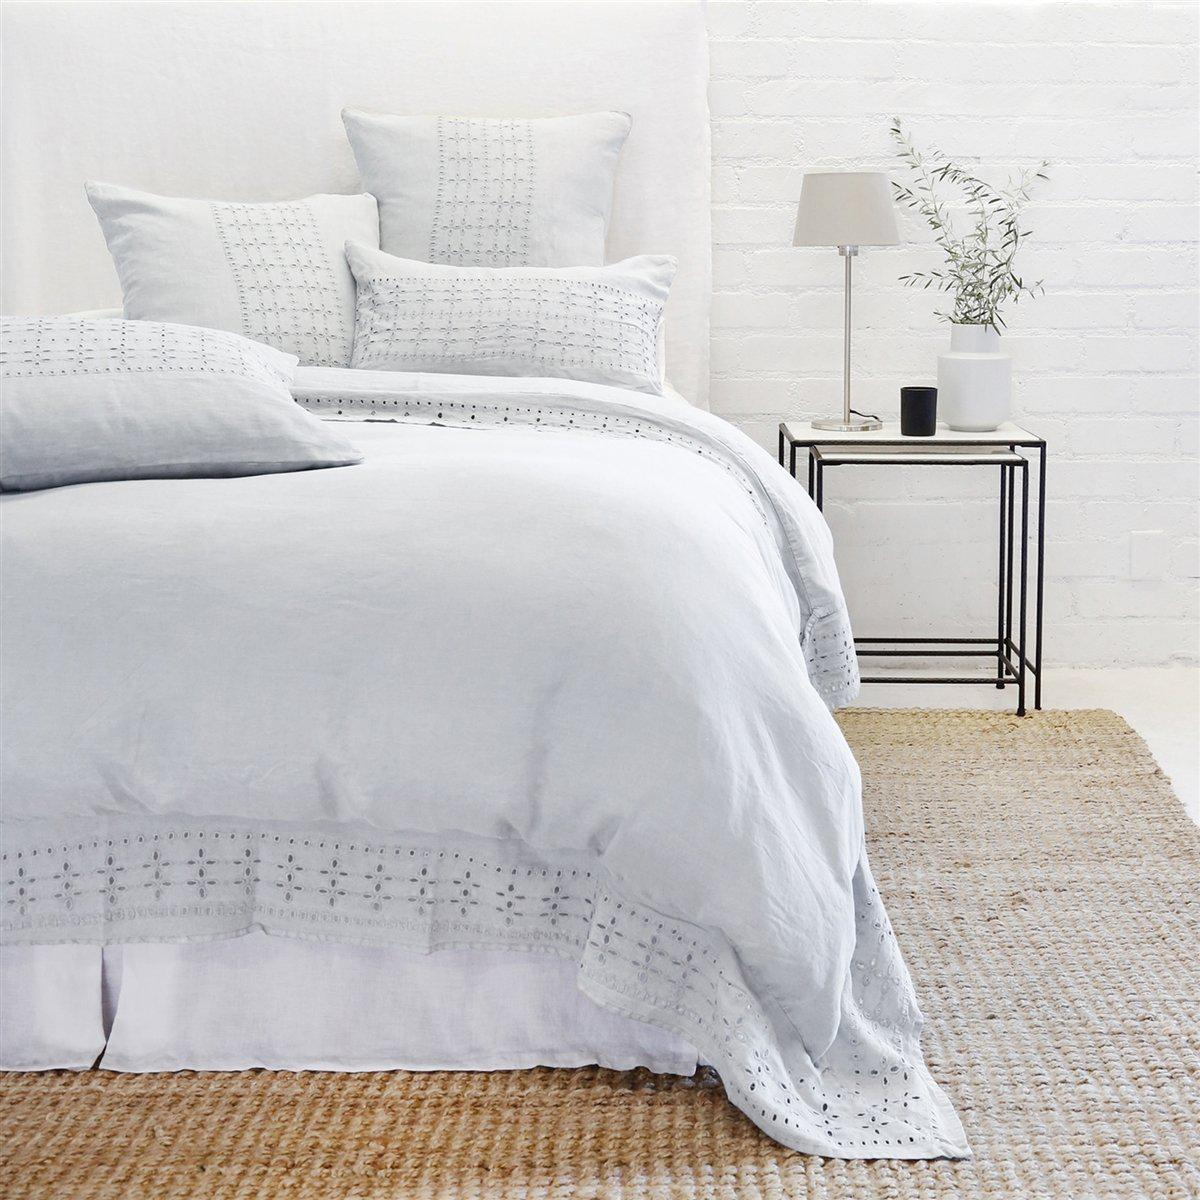 Layla Duvet by Pom Pom at Home-Bed & Bath-Queen-Ocean-A Cottage in the City